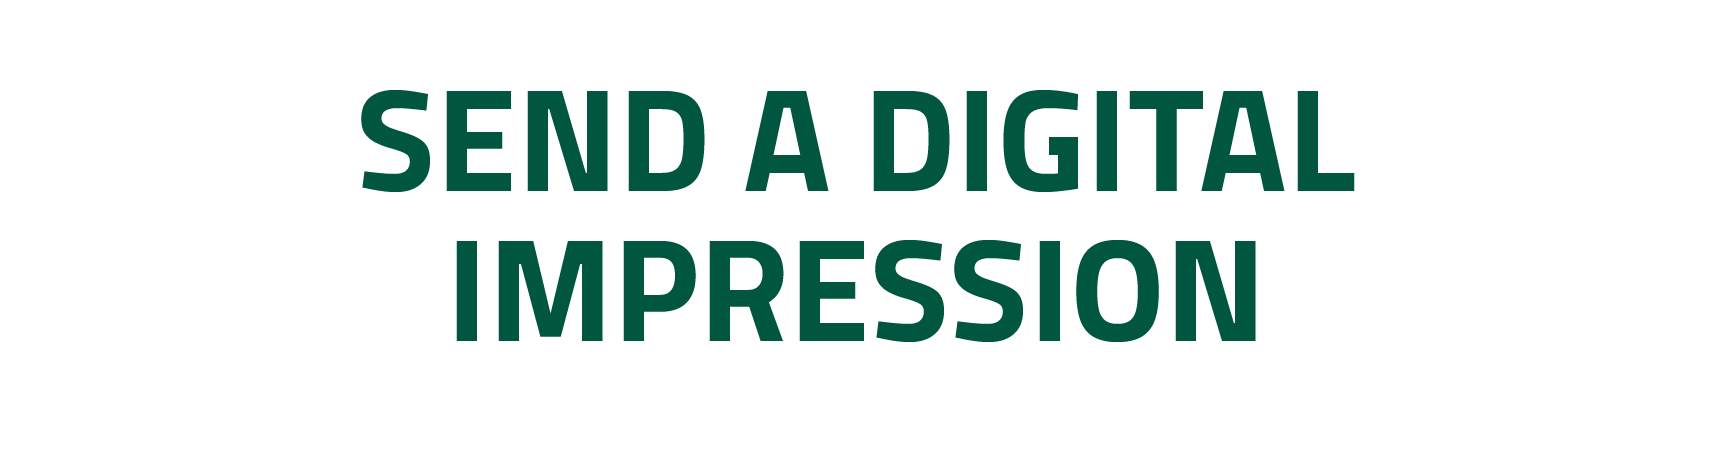 Send a Digital Impression